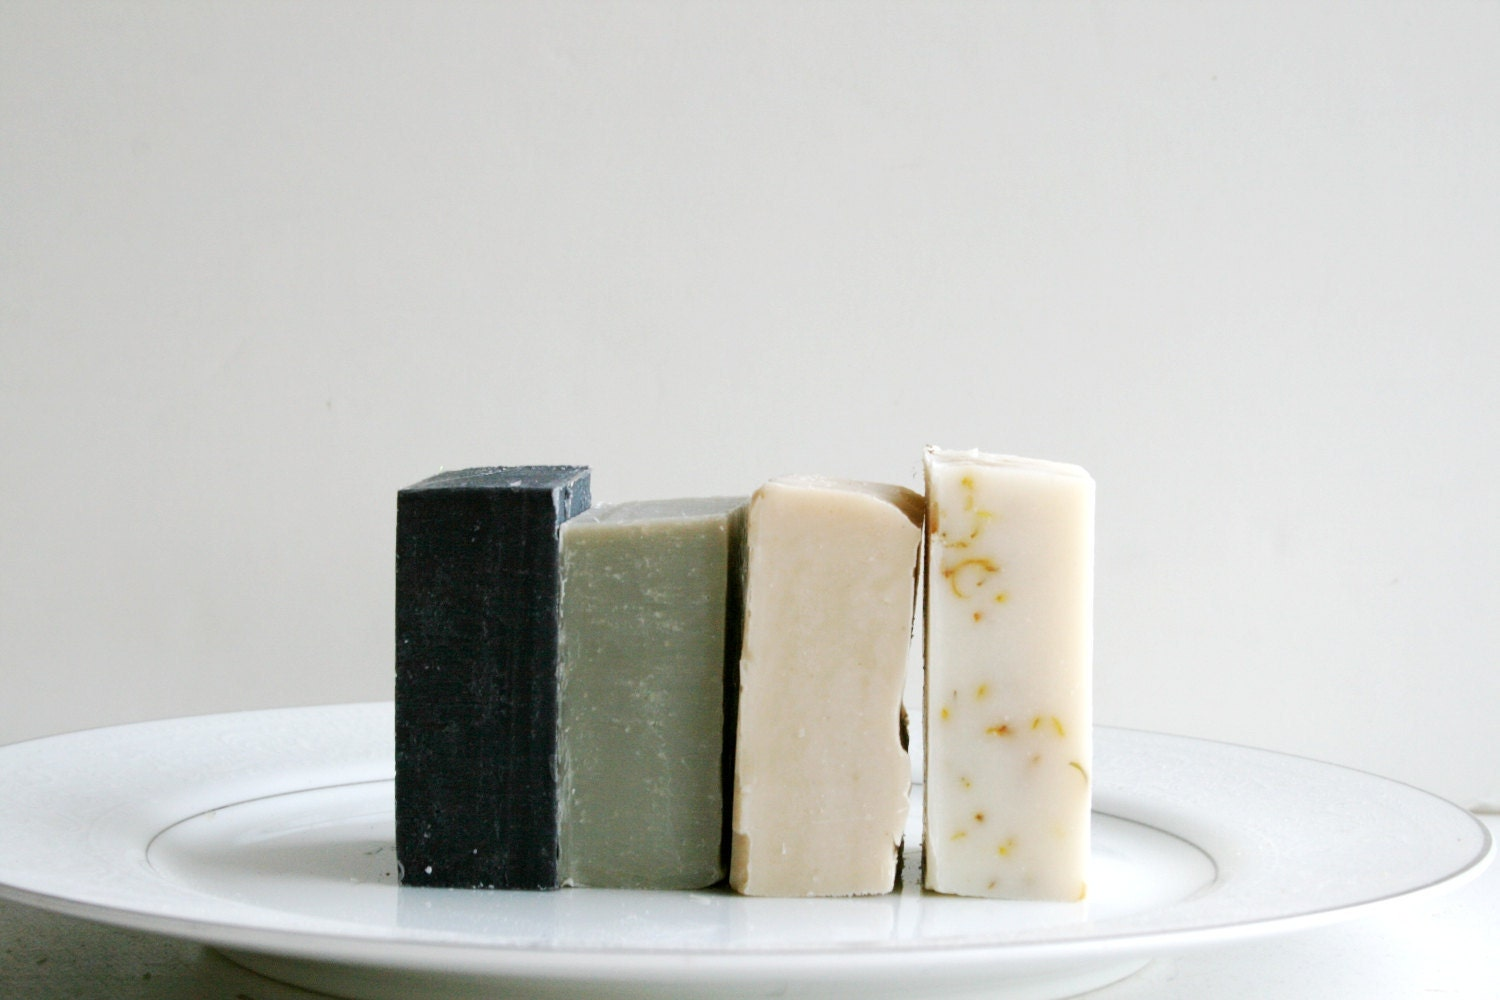 Travel Soap - 4 Natural Soap Bars - Handmade Soap, Essential Oil Soap - ElegantRoseBoutique